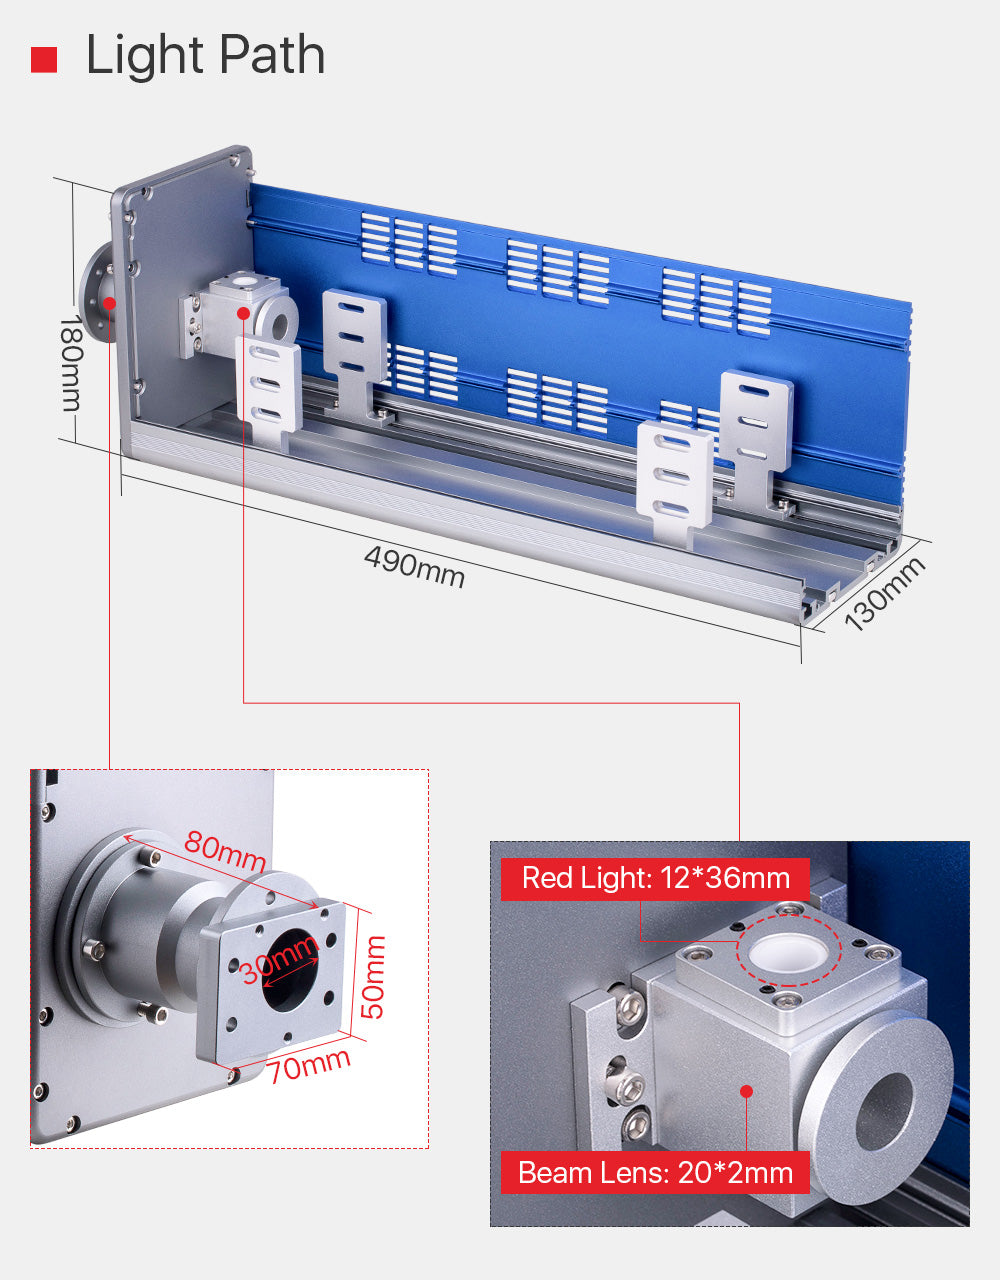 DaWei Light Path, can suitable for many kinds RF-Laser Source.